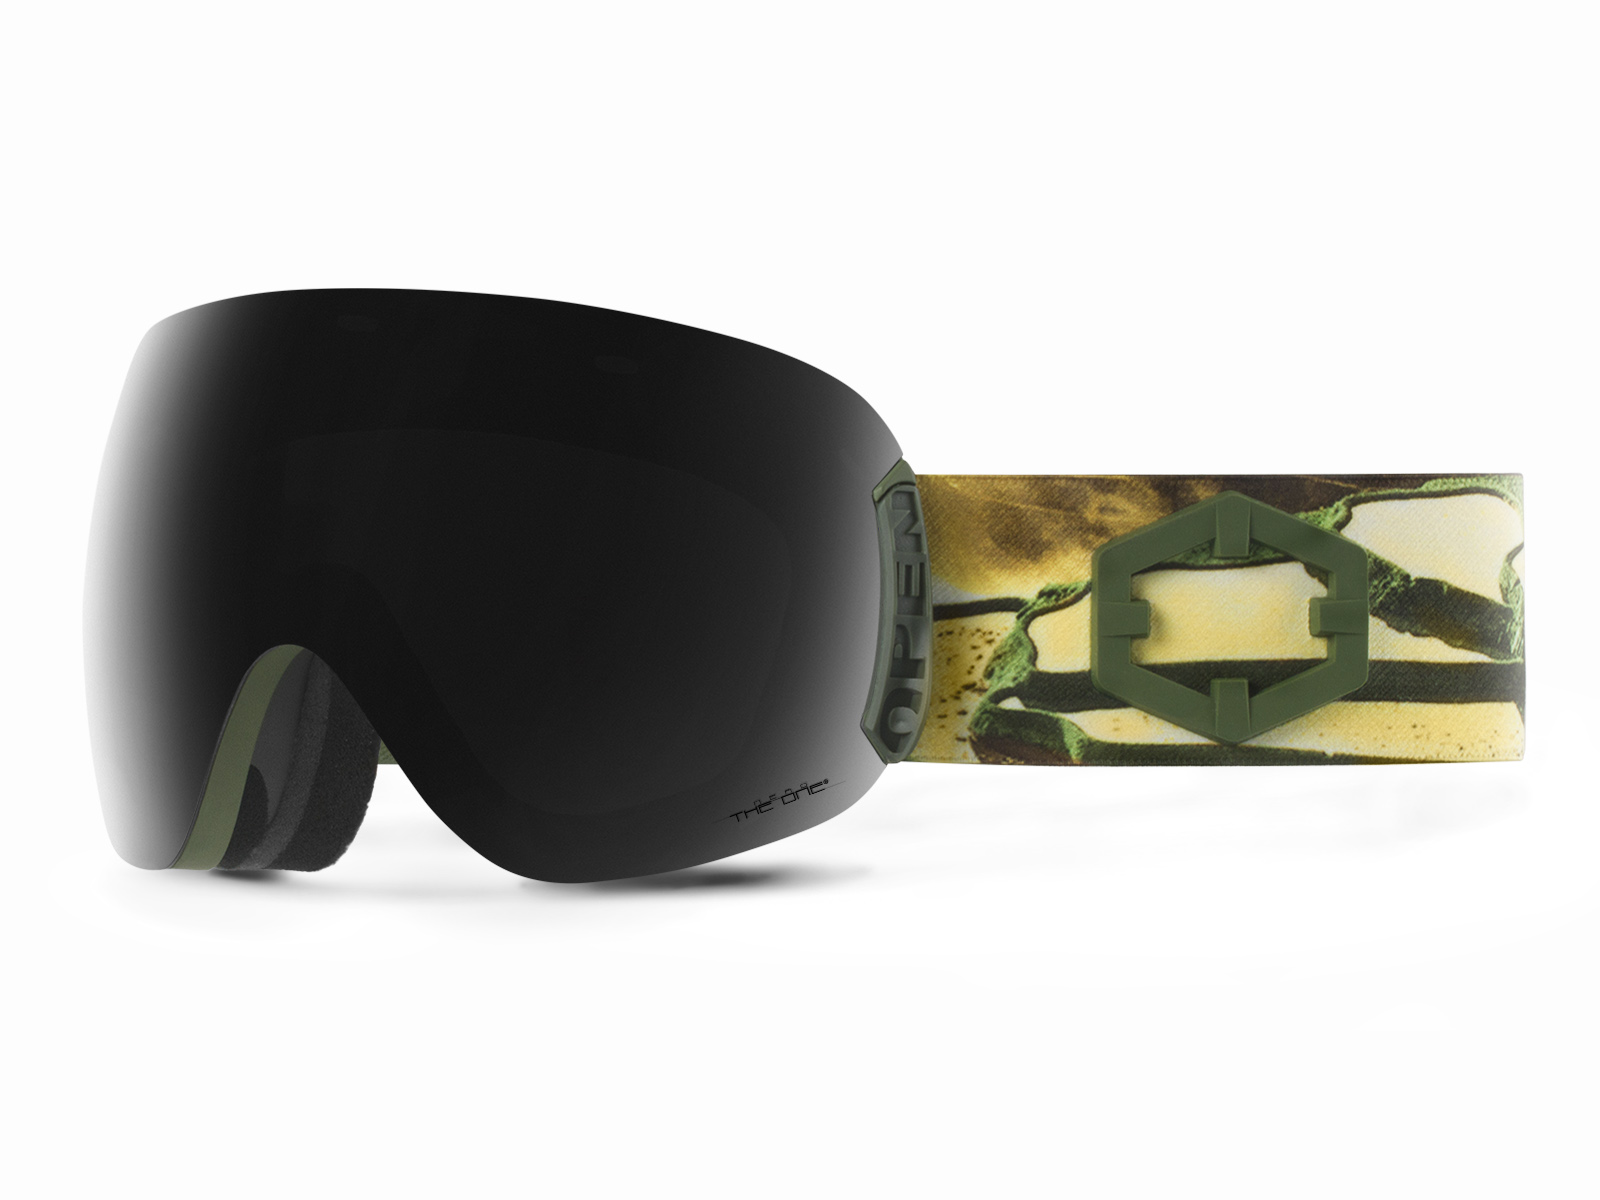 OPEN EASTERN GOLD THE ONE NERO GOGGLE